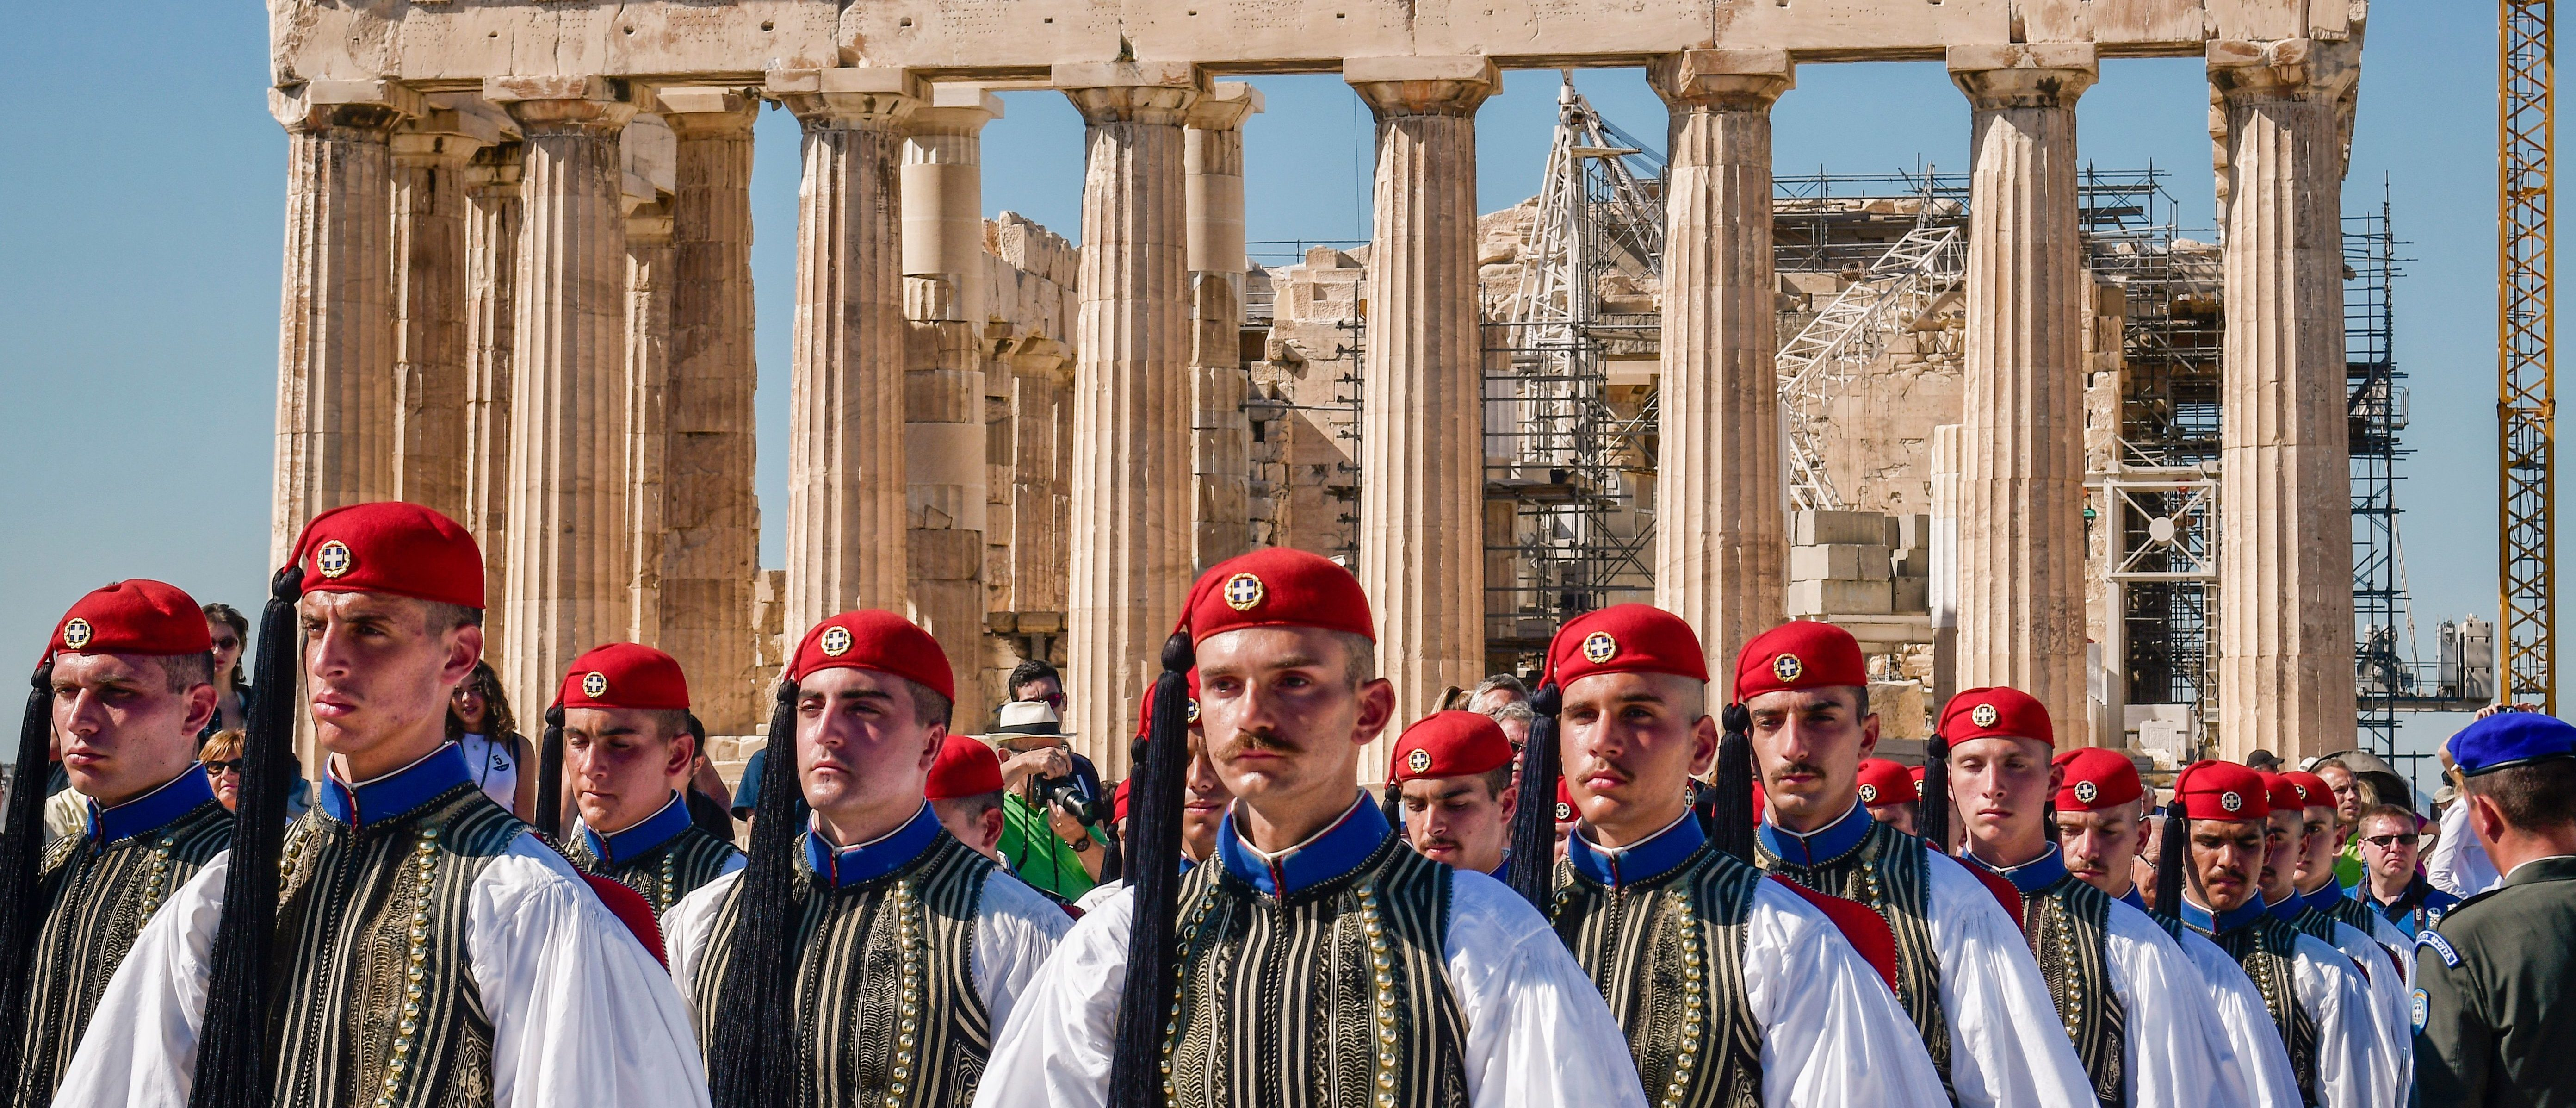 Greek presidental Evzoni Guards stand in front the Parthenon temple atop the Acropolis hill during a ceremony marking the anniversary of the liberation of Athens from Nazi occupation, on October 12, 2017 in Athens. LOUISA GOULIAMAKI/AFP/Getty Images)